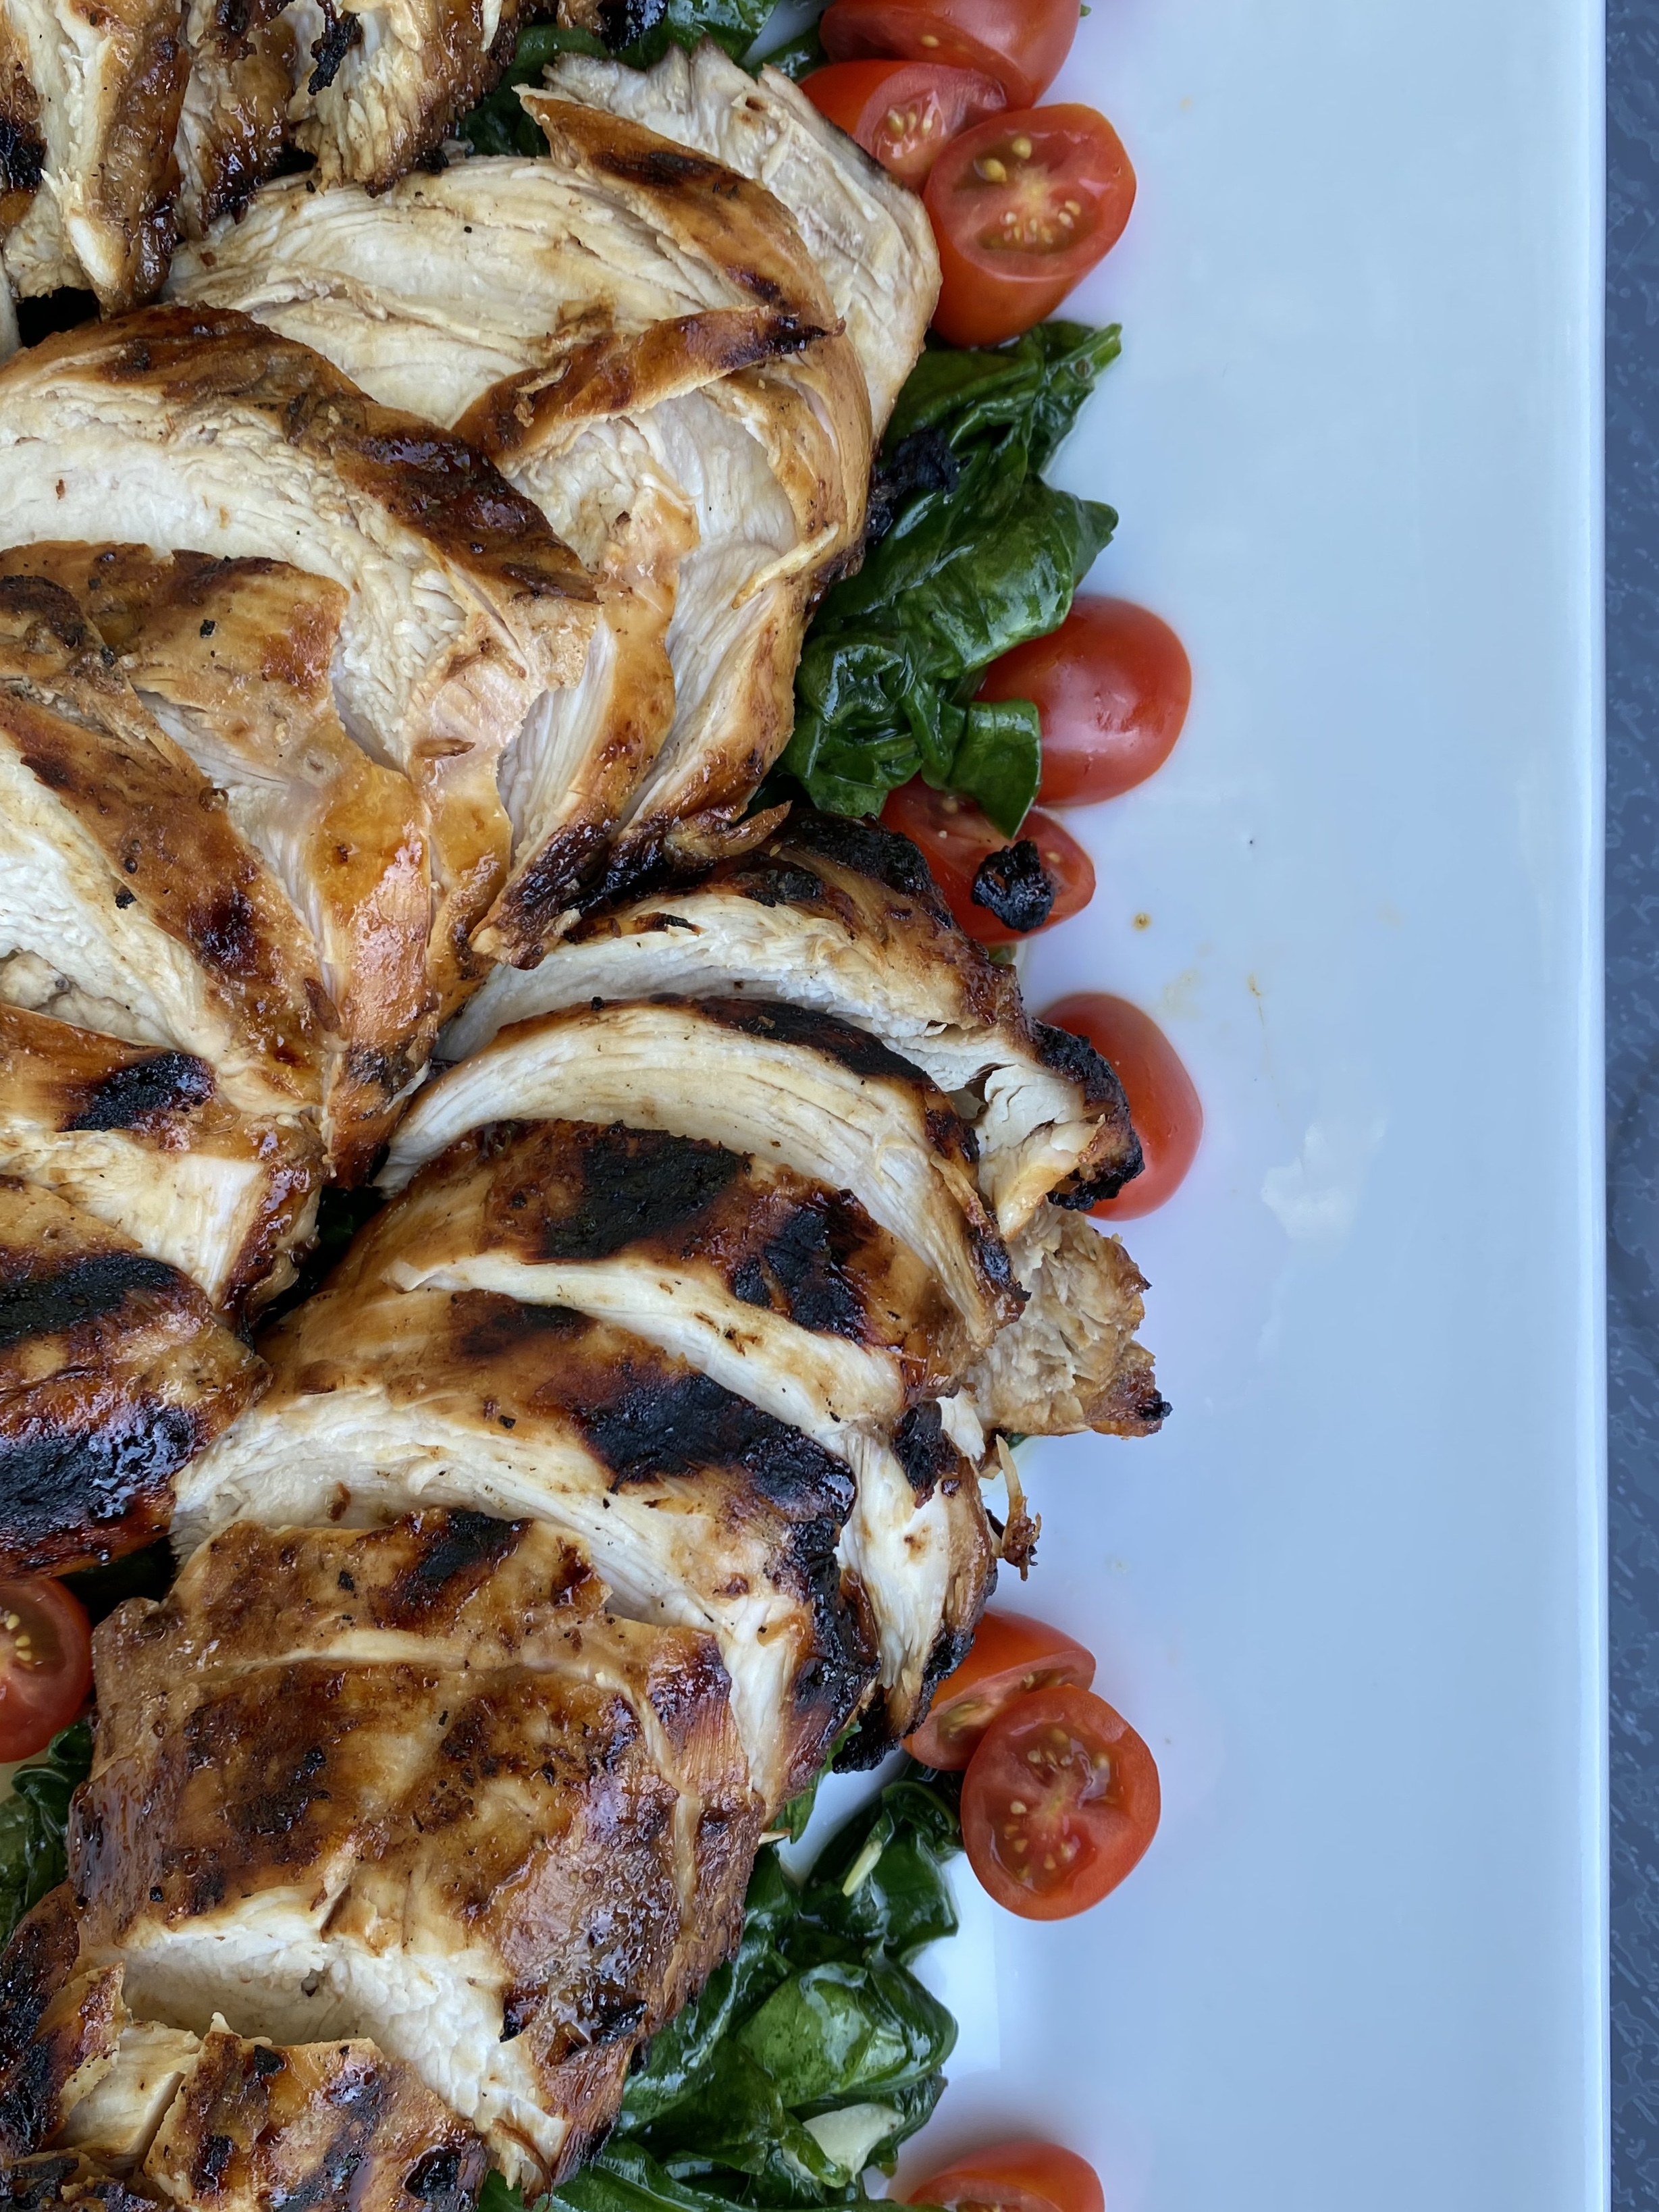 Grilled Chicken Over Garlicky Wilted Spinach